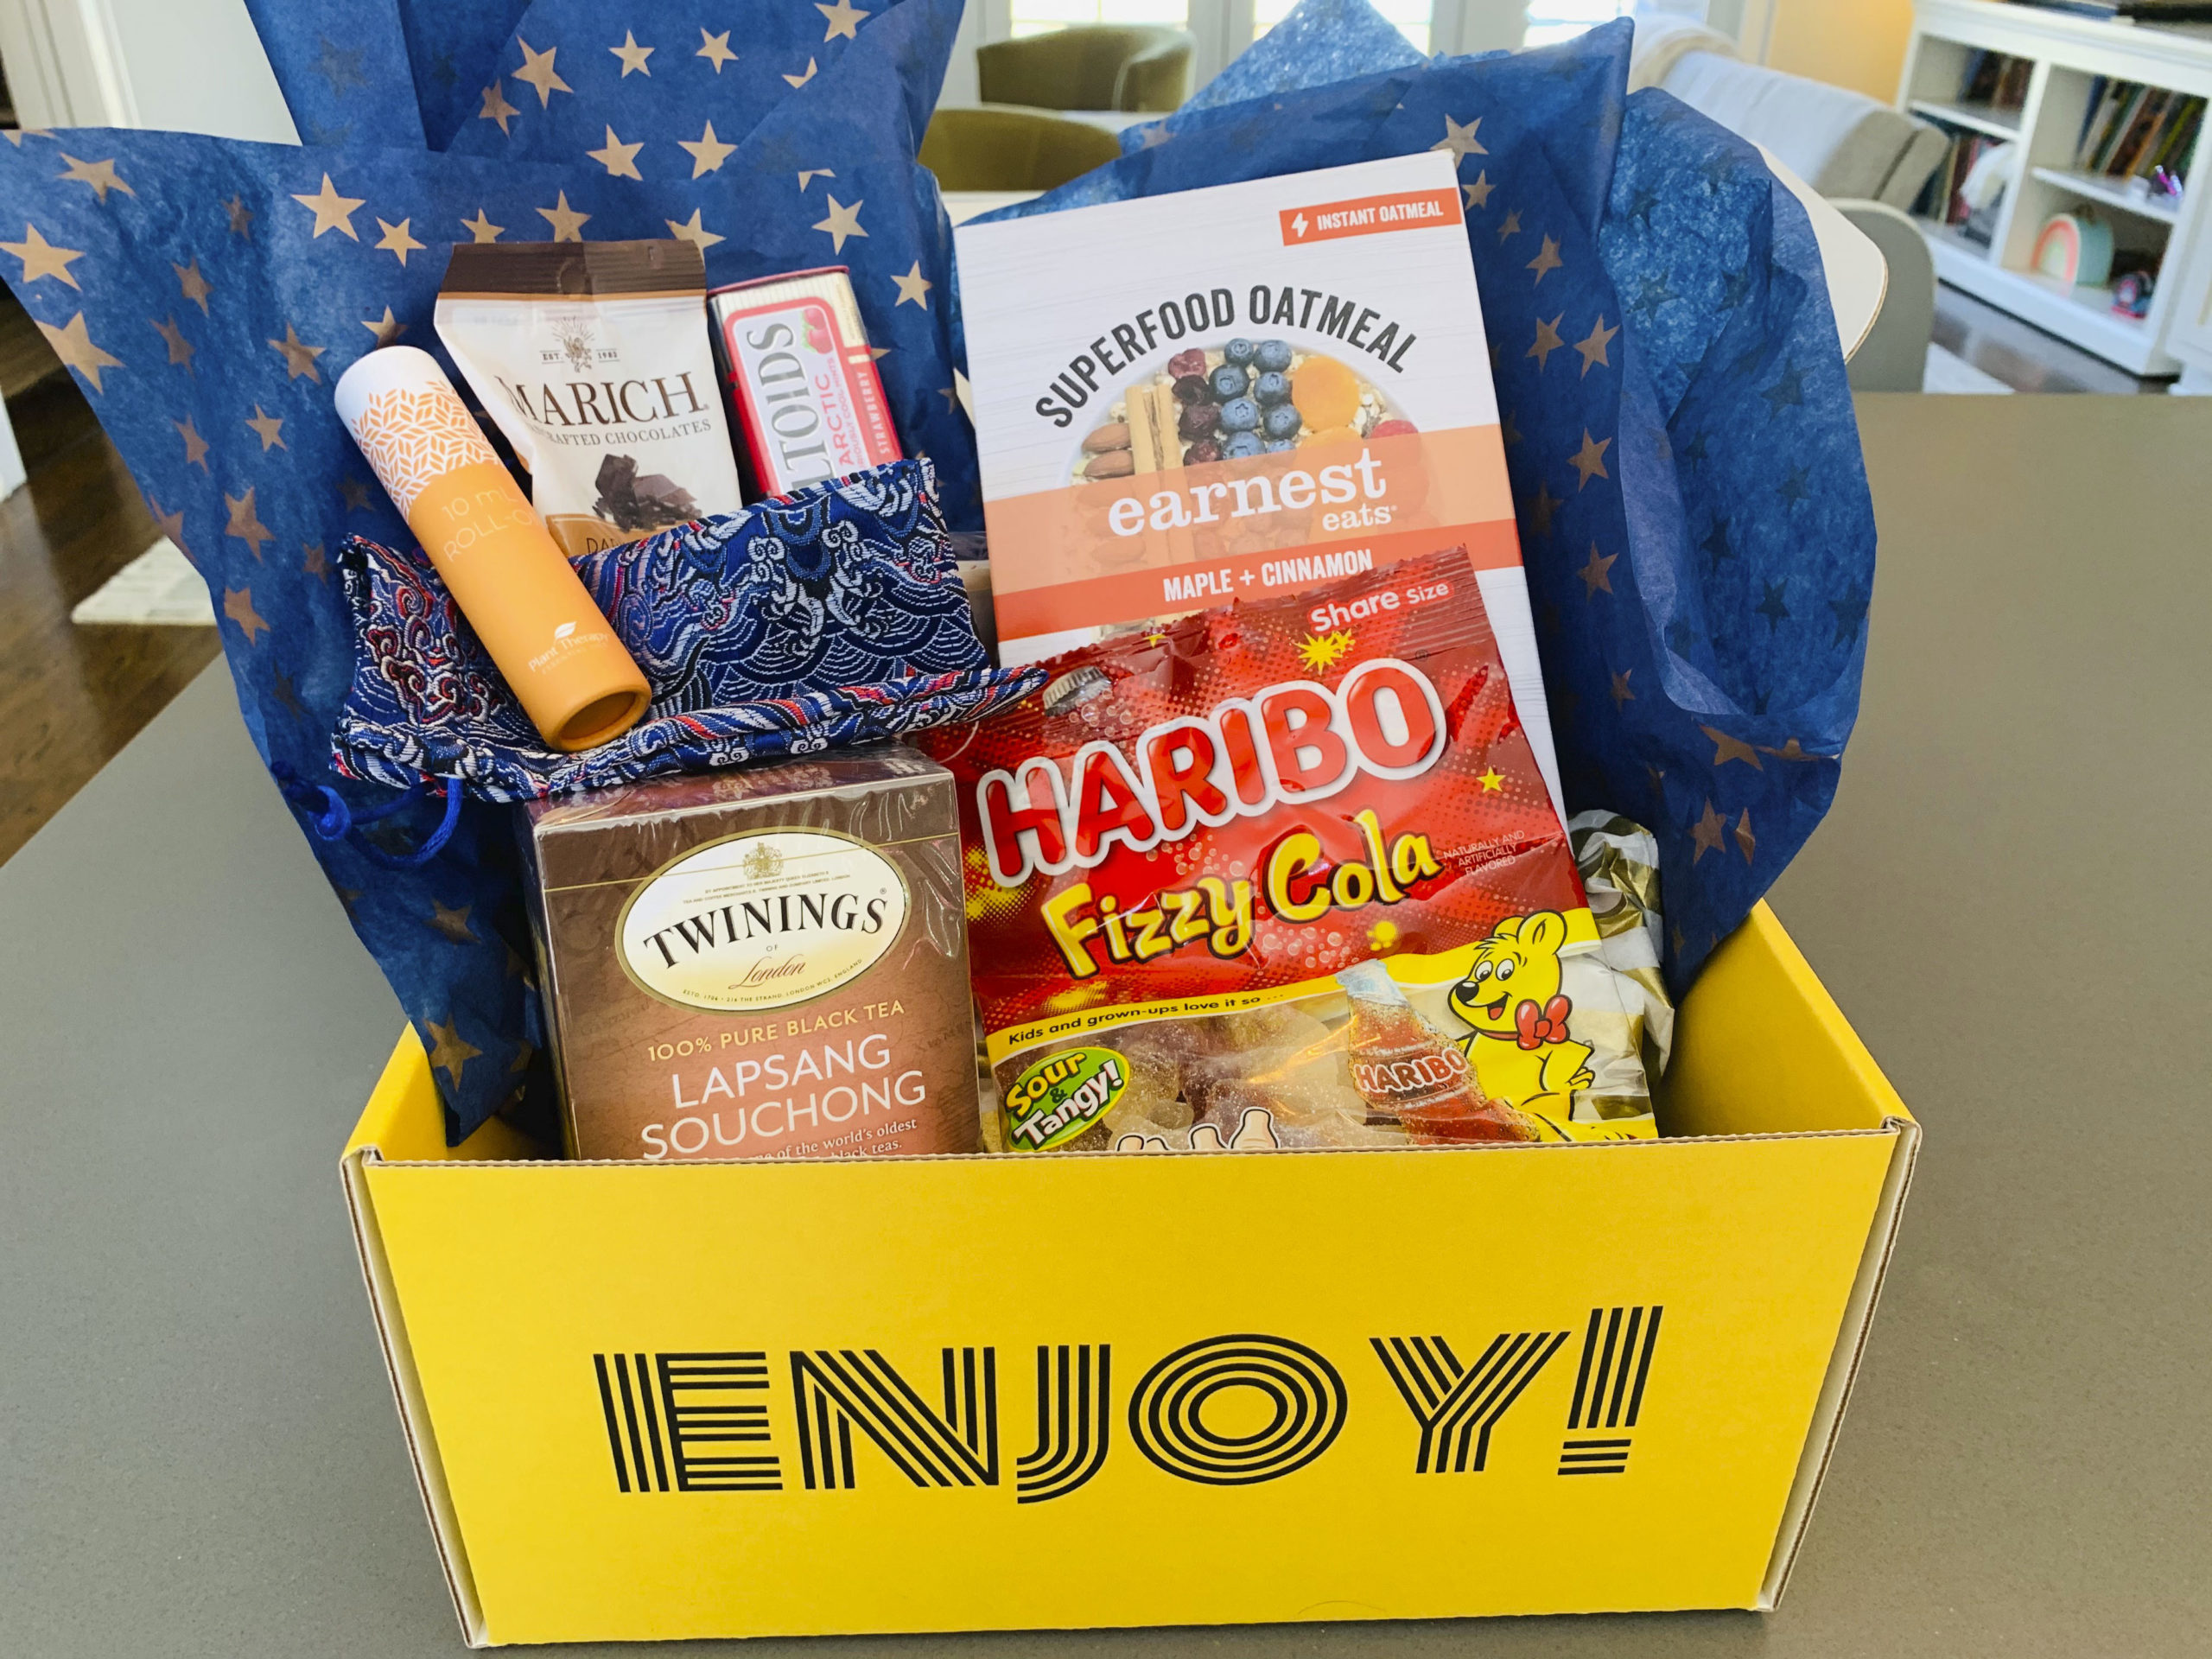 Customers who want to order a care package from Bundles of Joy can choose from several themed options, such as the